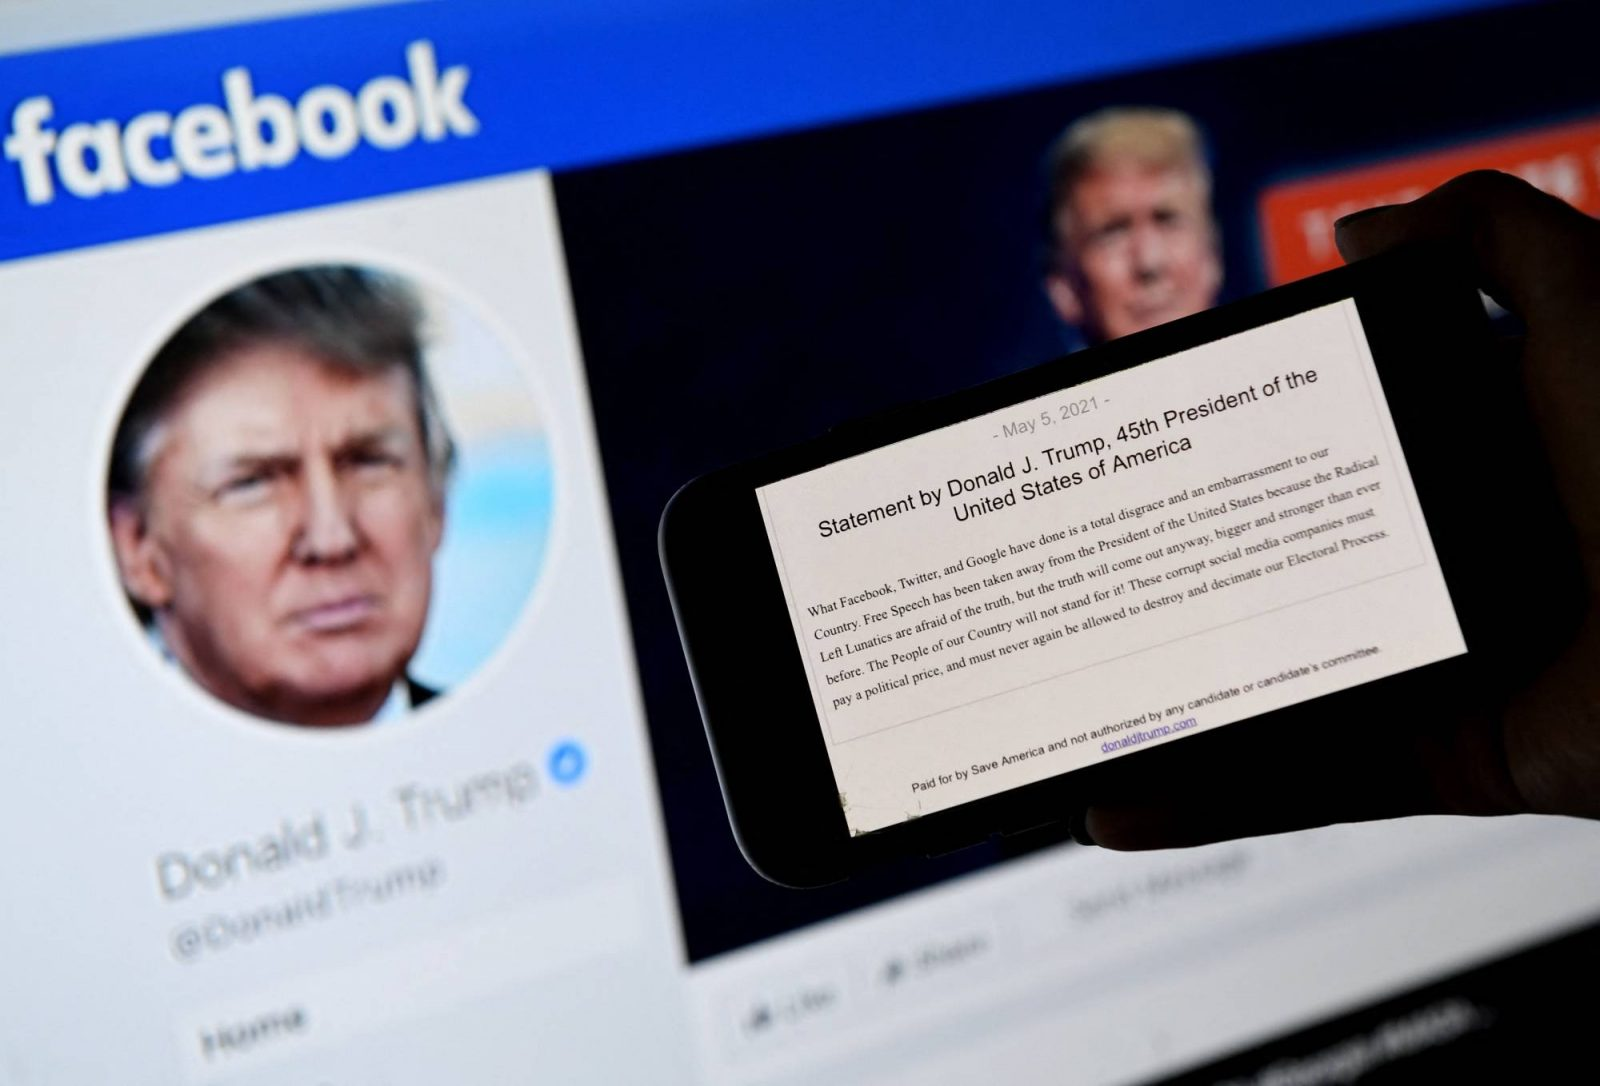 Facebook Extends Trump Ban For 2 Years